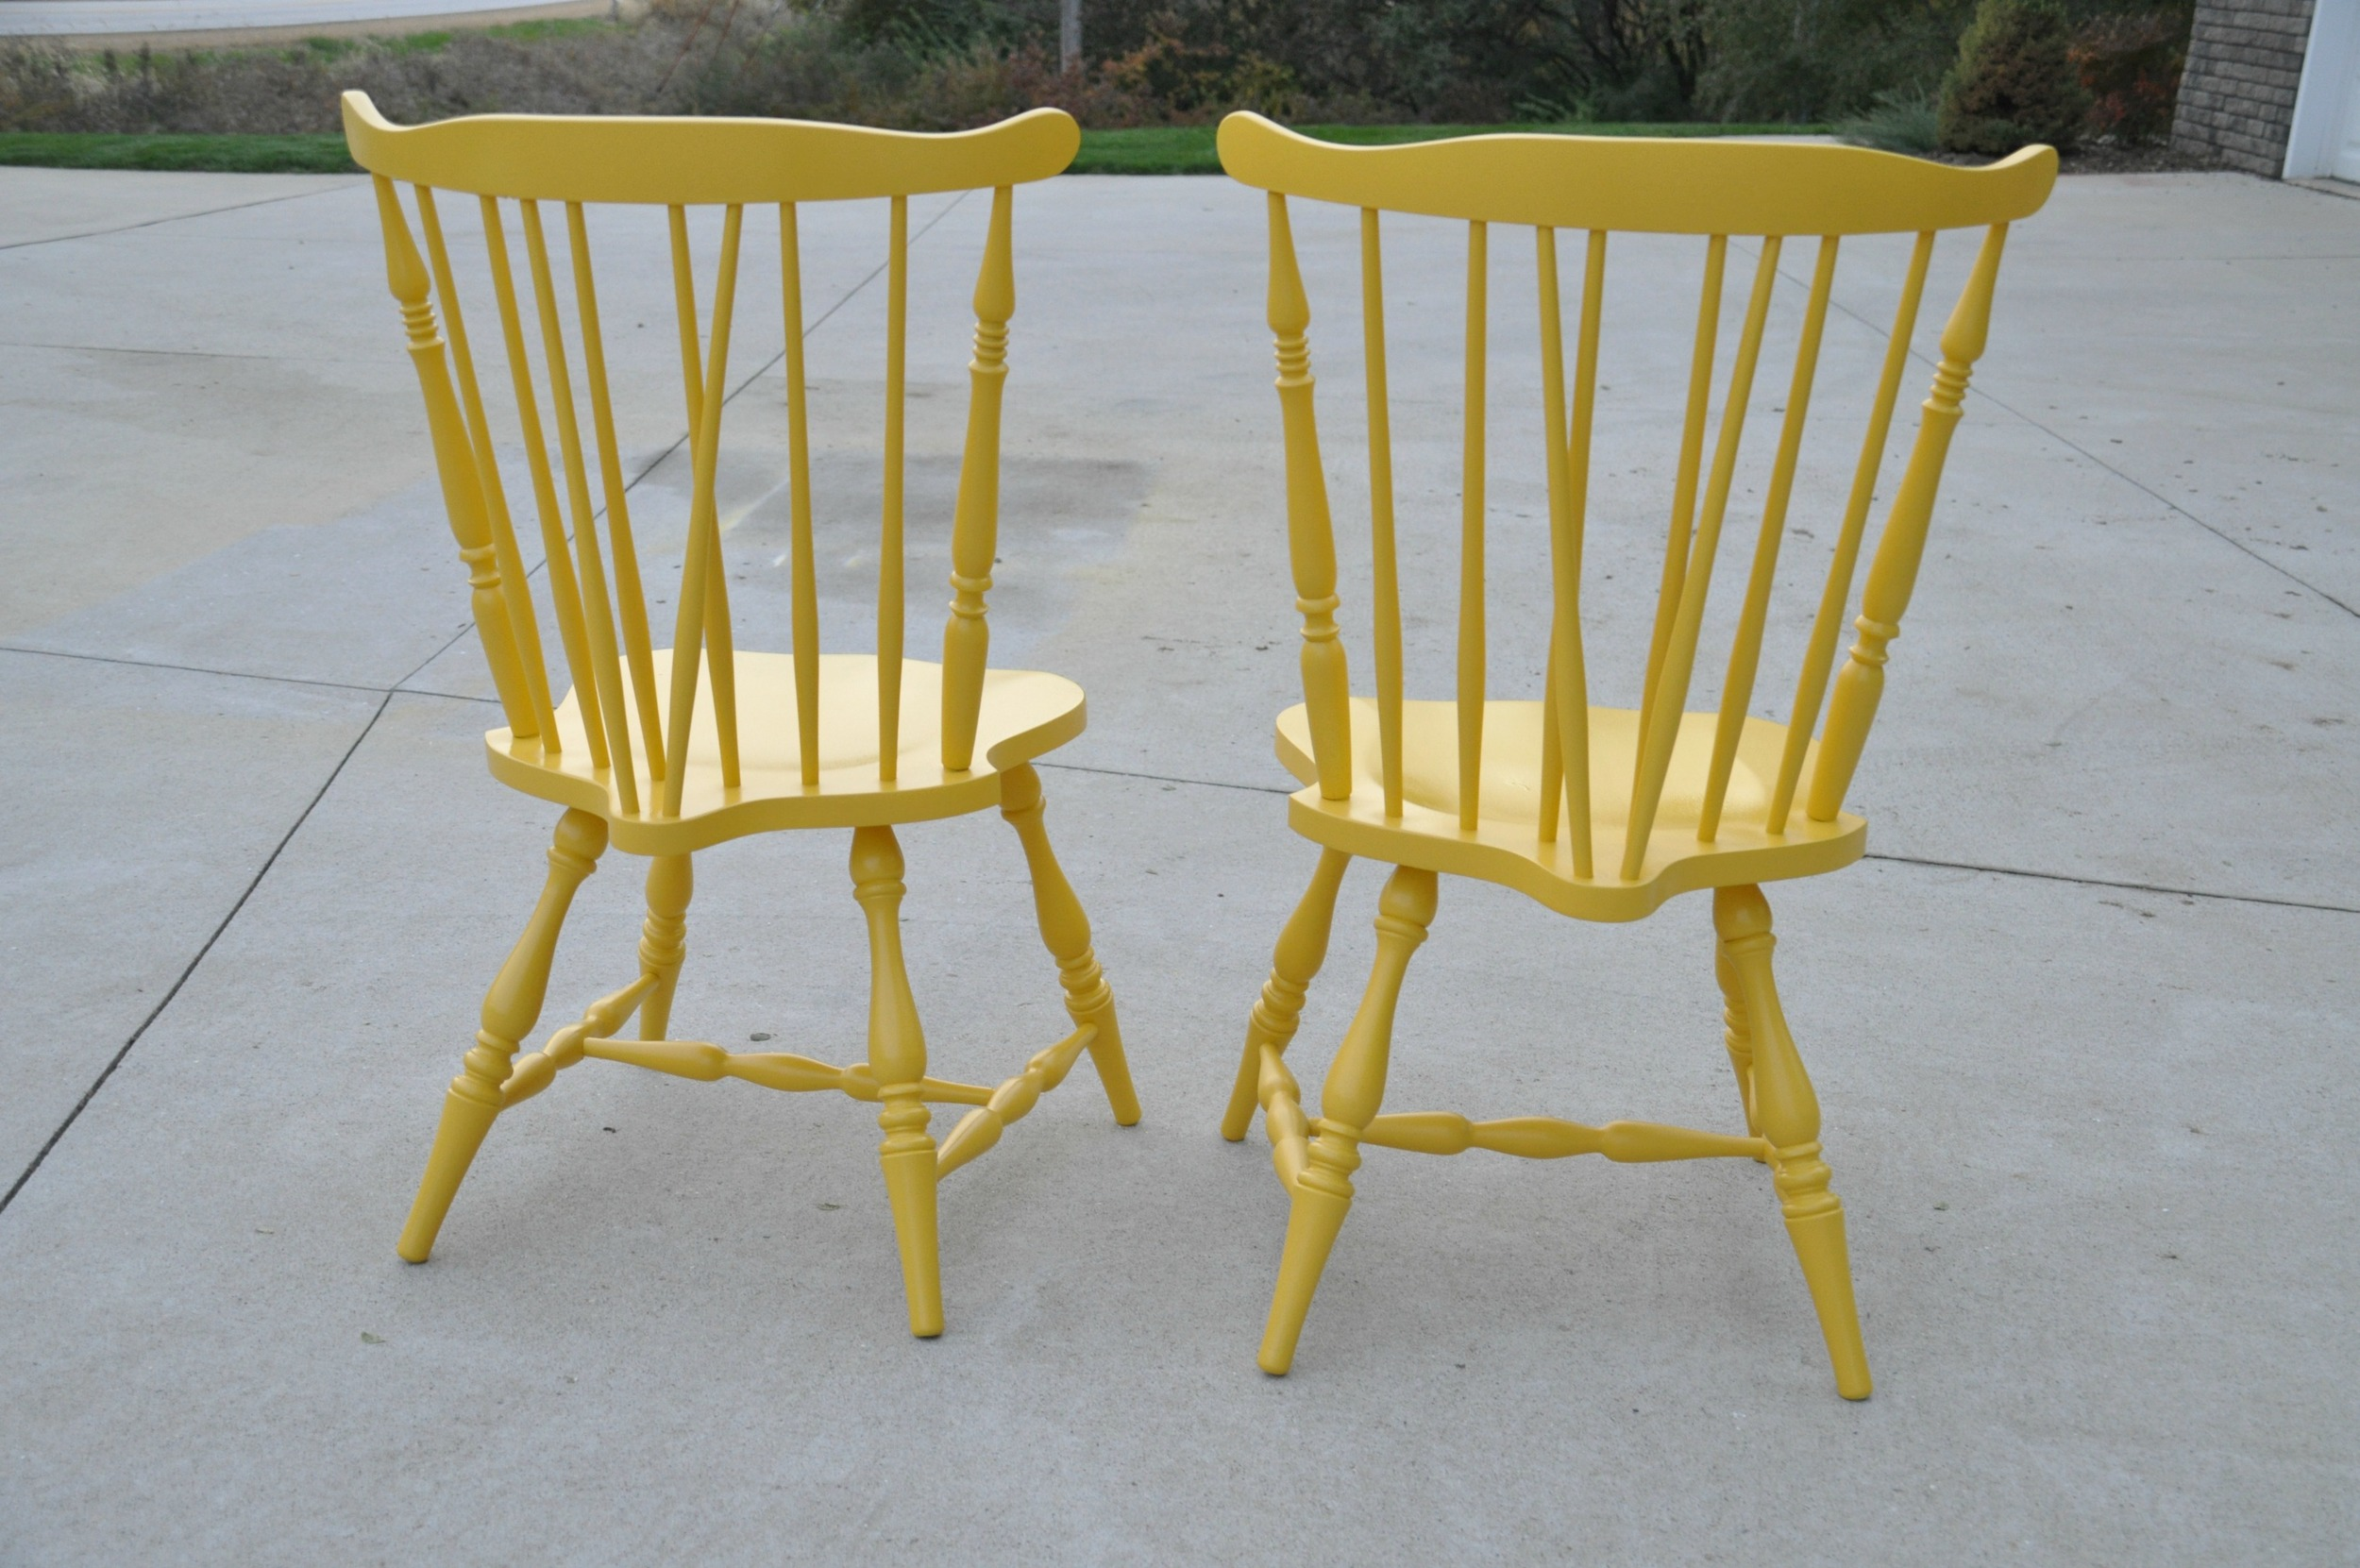 painted chairs.jpg